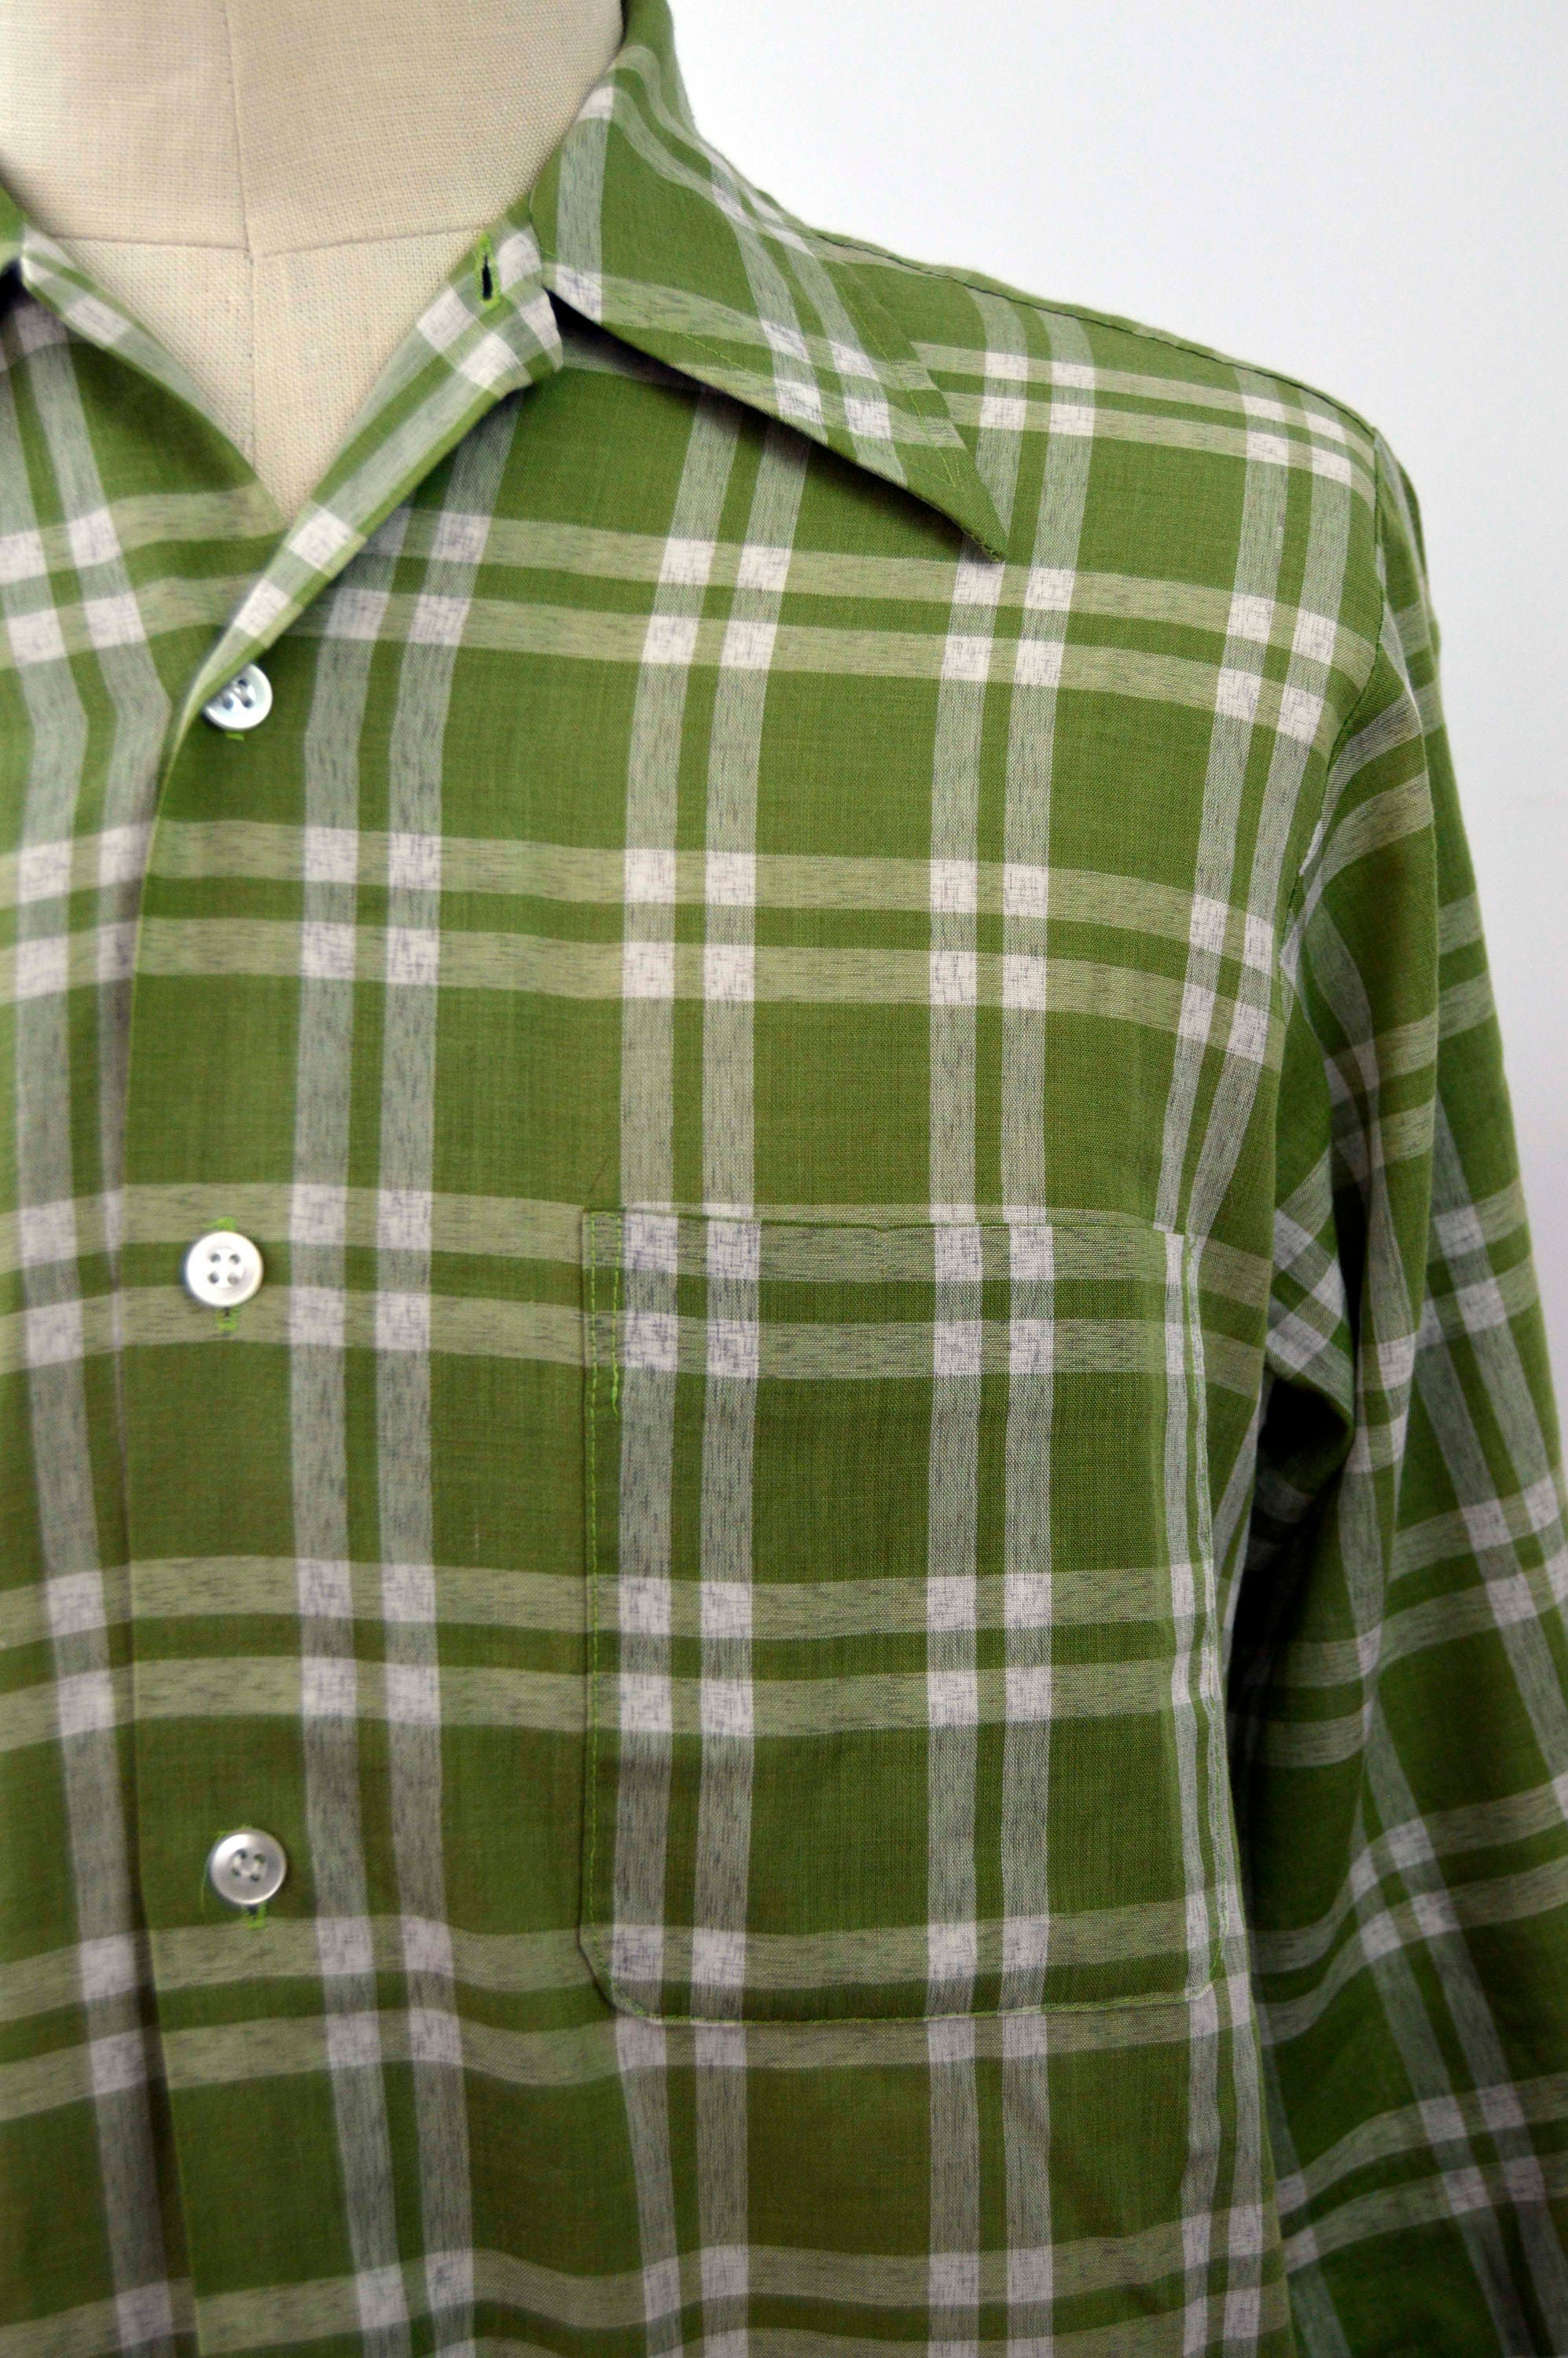 b32003a6907 Vintage 1960s Green Plaid Perma-Prest Button Up Shirt by Sears Size Medium